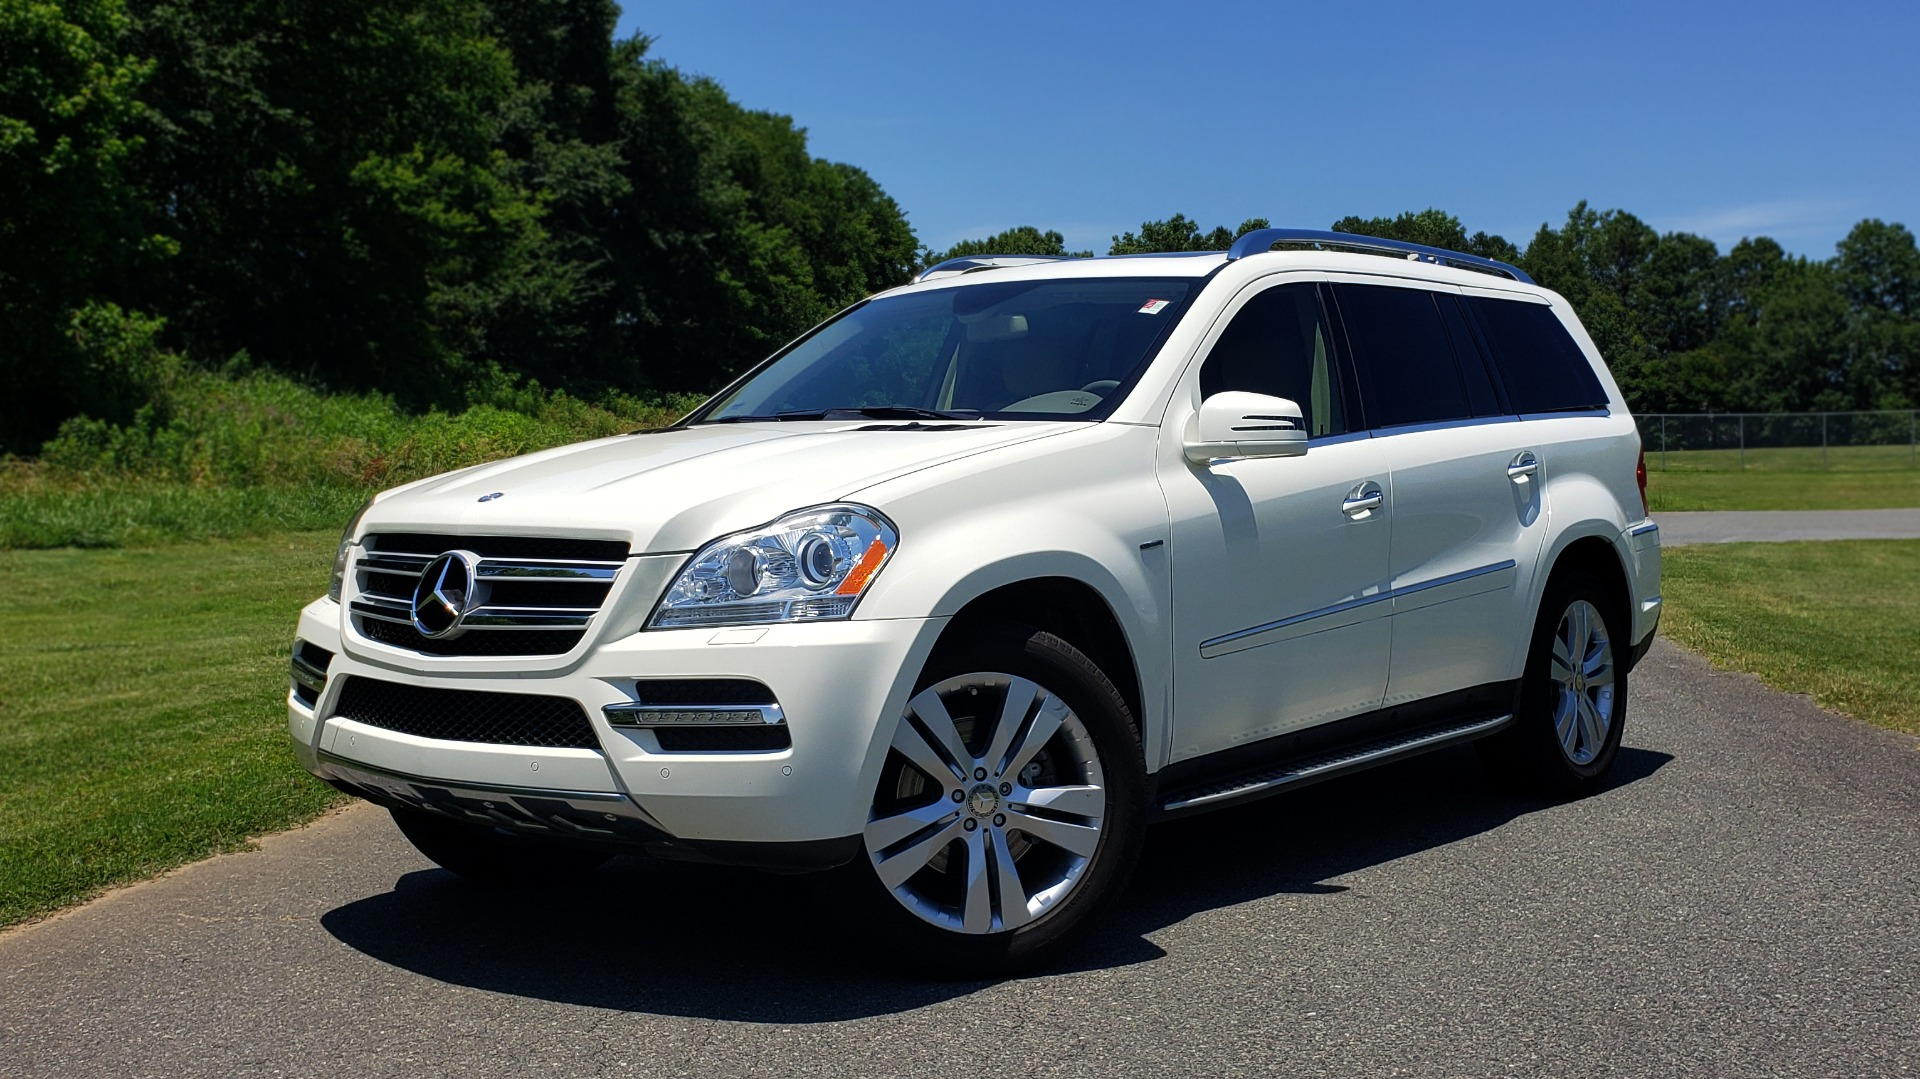 Used 2012 Mercedes-Benz GL-CLASS GL 350 BLUETEC / NAV / DUAL-ROOF / HTD STS / 3-ROW / REARVIEW for sale Sold at Formula Imports in Charlotte NC 28227 95